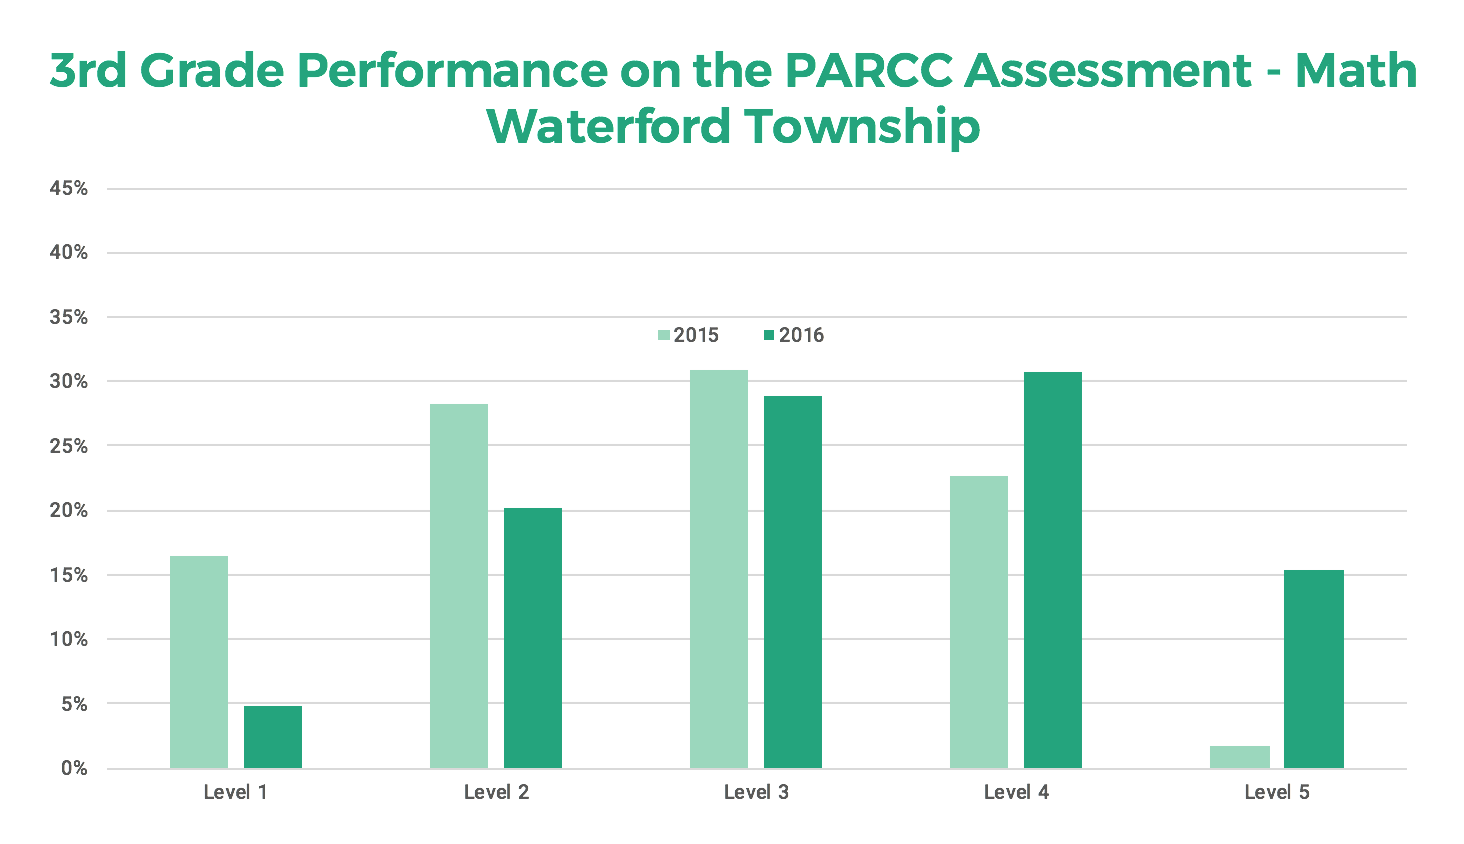 PARCC Math Results Before and After Edulastic Waterford teachers saw an incredible boost in math scores. This graph shows the distribution of scores across the third grade before using Edulastic (2015) and after using Edulastic (2016.) By bringing assessment online, teachers were able to better support student preparation. The efforts paid off! Students performed significantly better on the PARCC after practicing online with Edulastic.